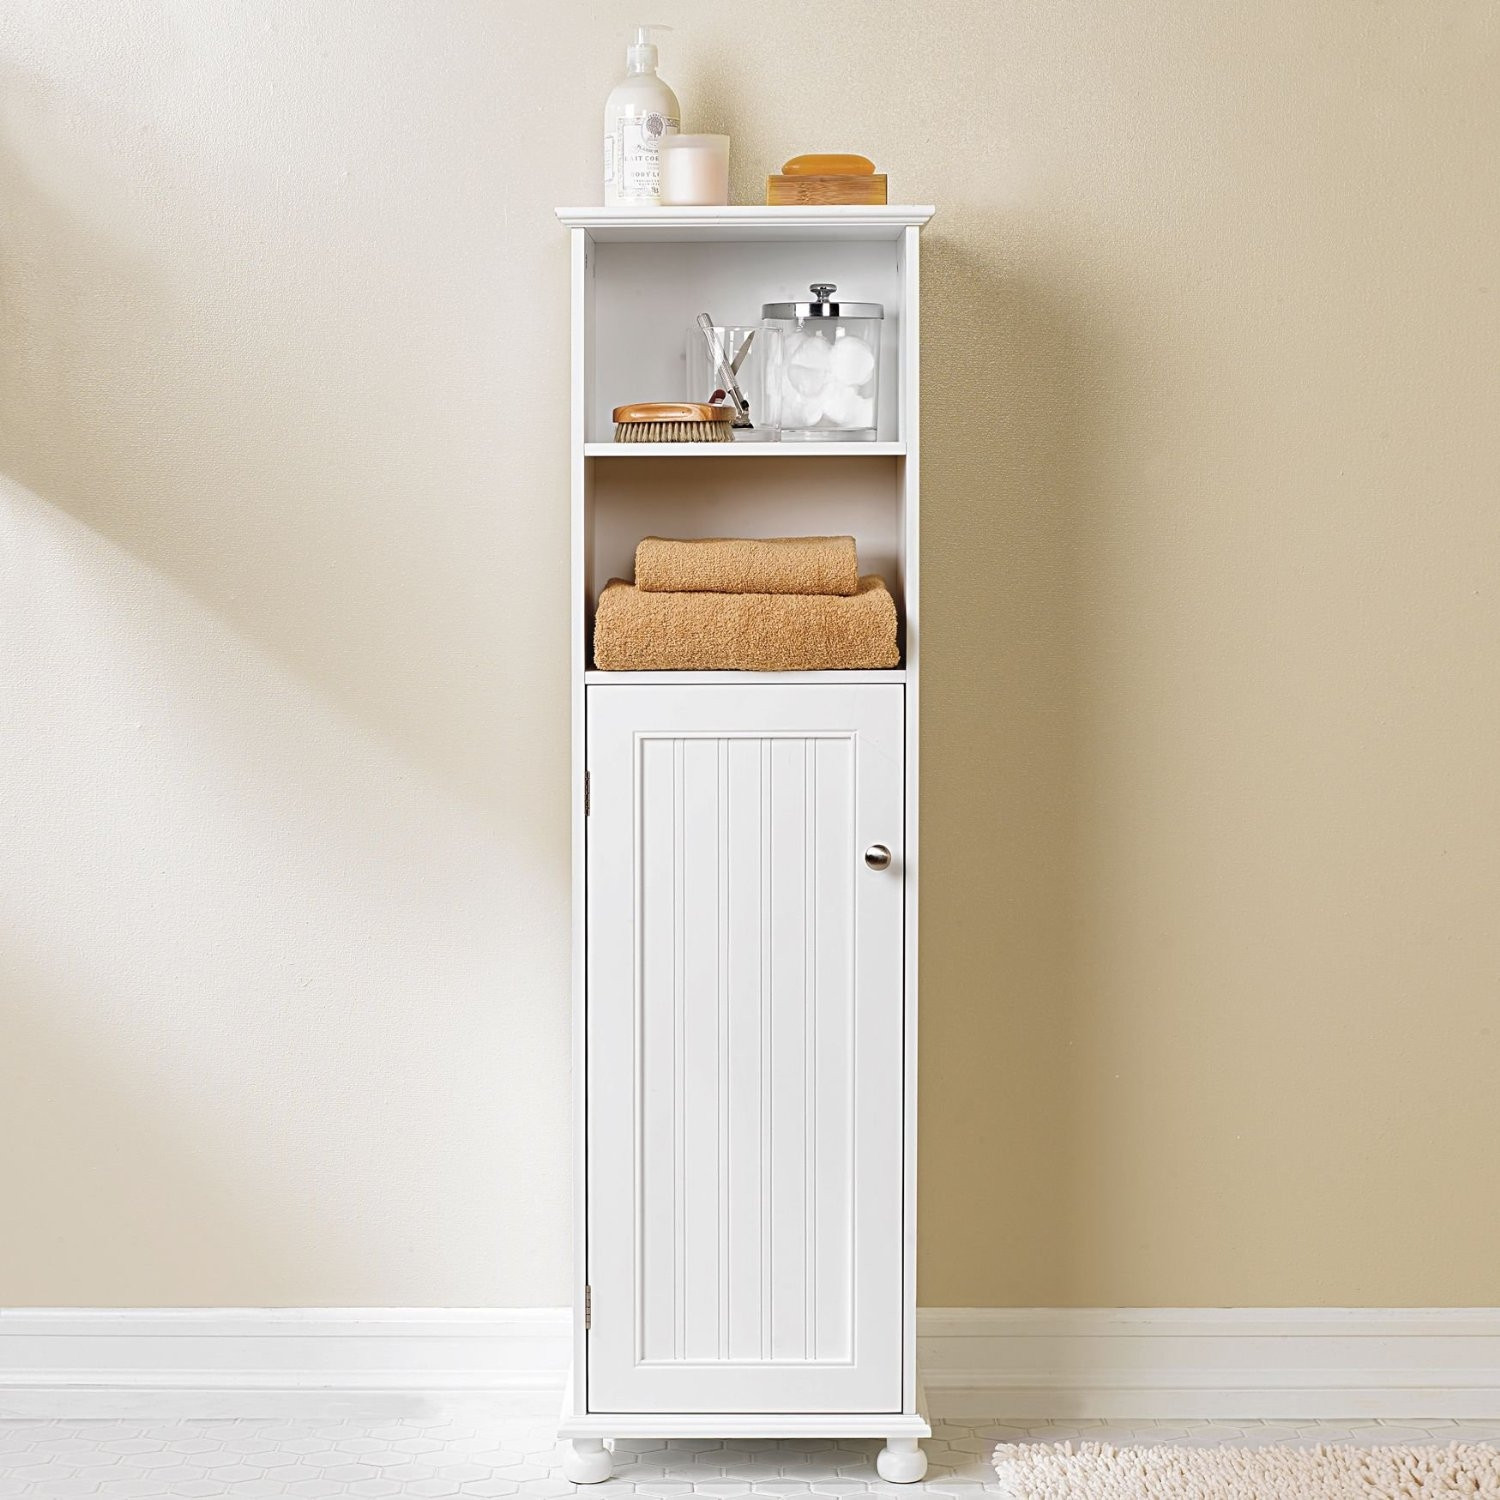 Breathtaking Free Standing Bathroom Storage With Chic Design Regarding Free Standing Storage Cupboards (View 11 of 12)